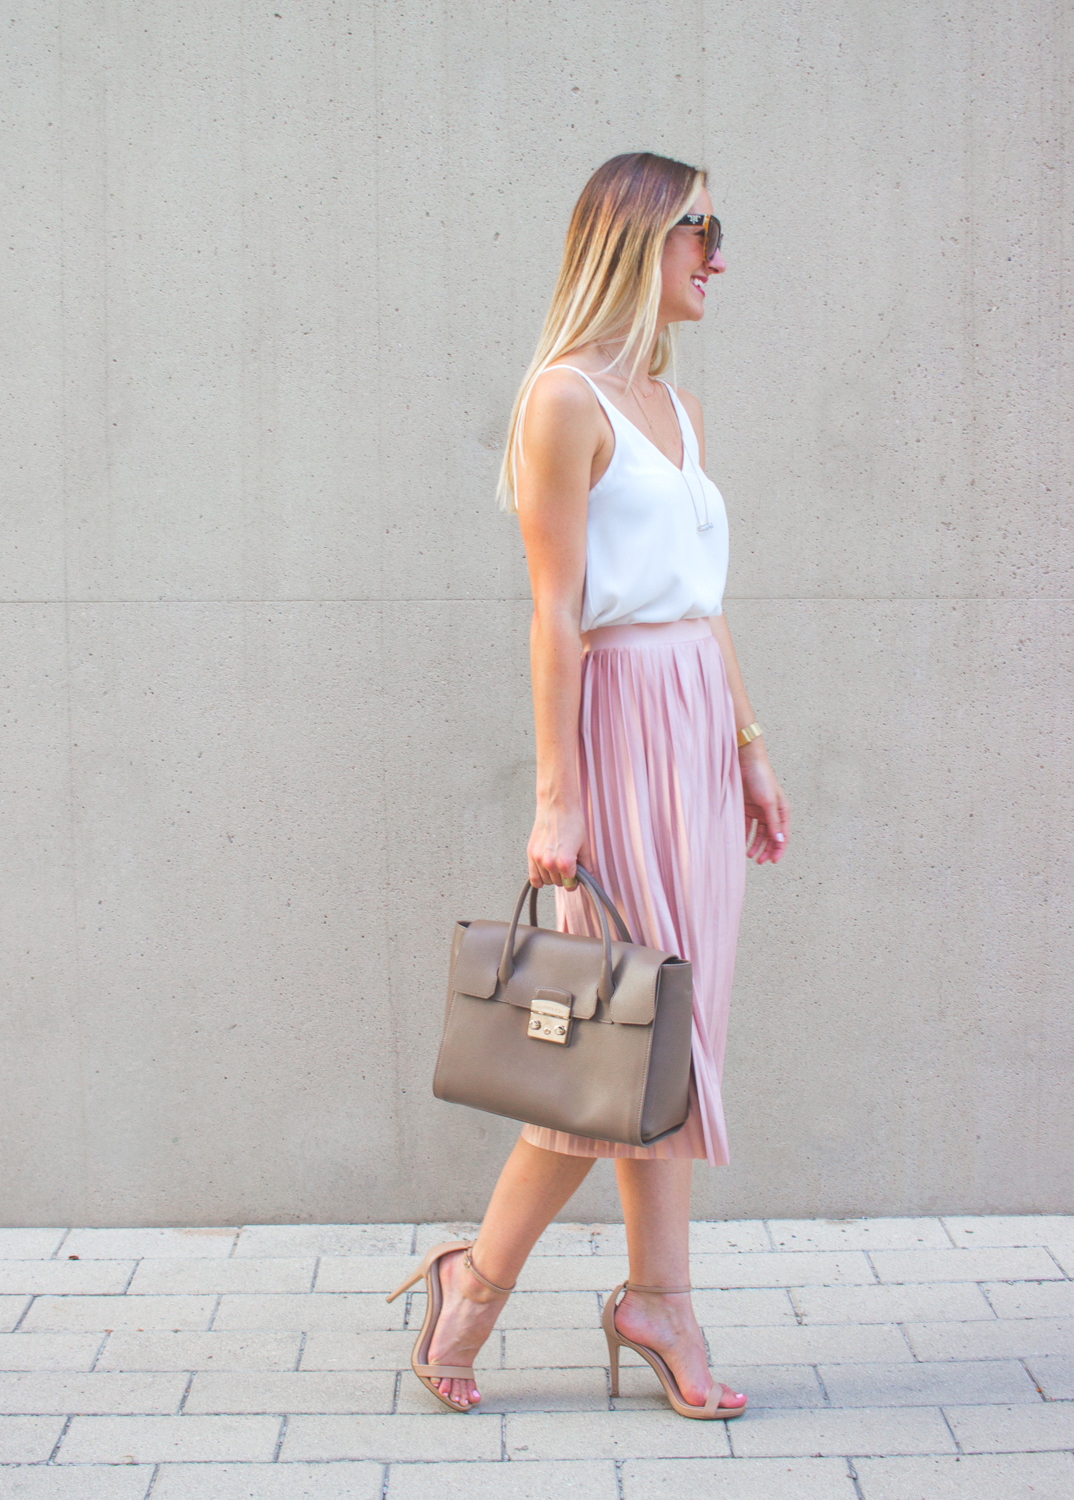 livvyland-blog-olivia-watson-topshop-blush-pink-pleated-high-waist-skirt-white-top-girly-feminine-outfit-6